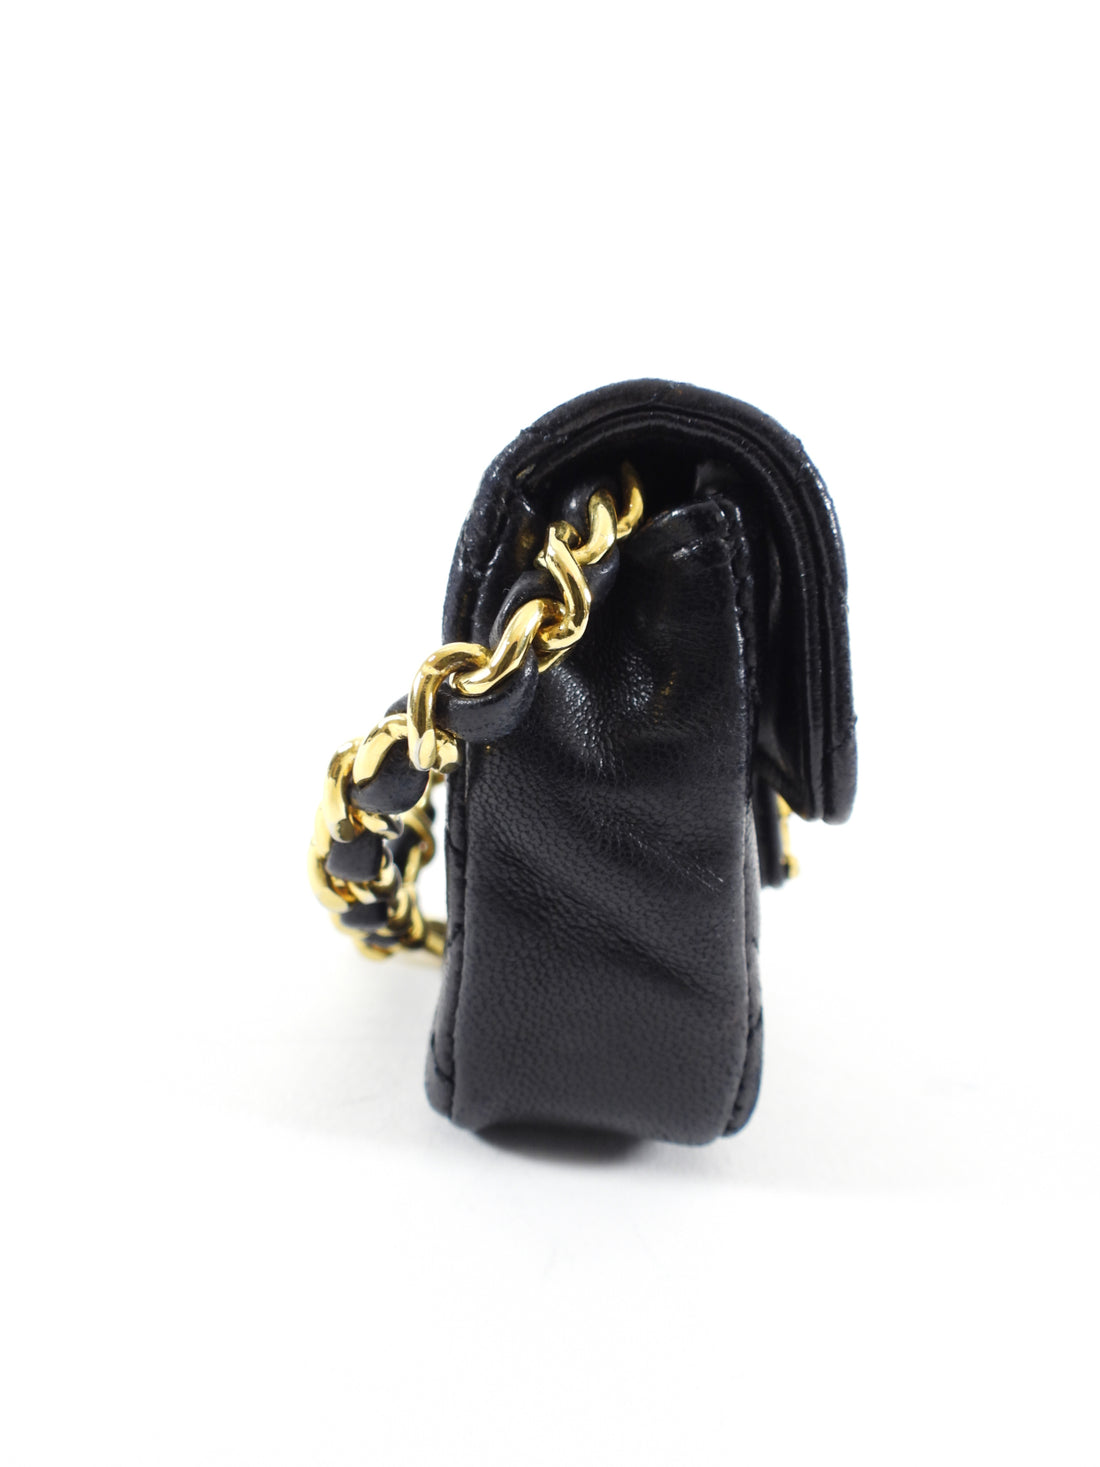 Chanel Vintage 1990's Micro Flap Bag Charm for Belt